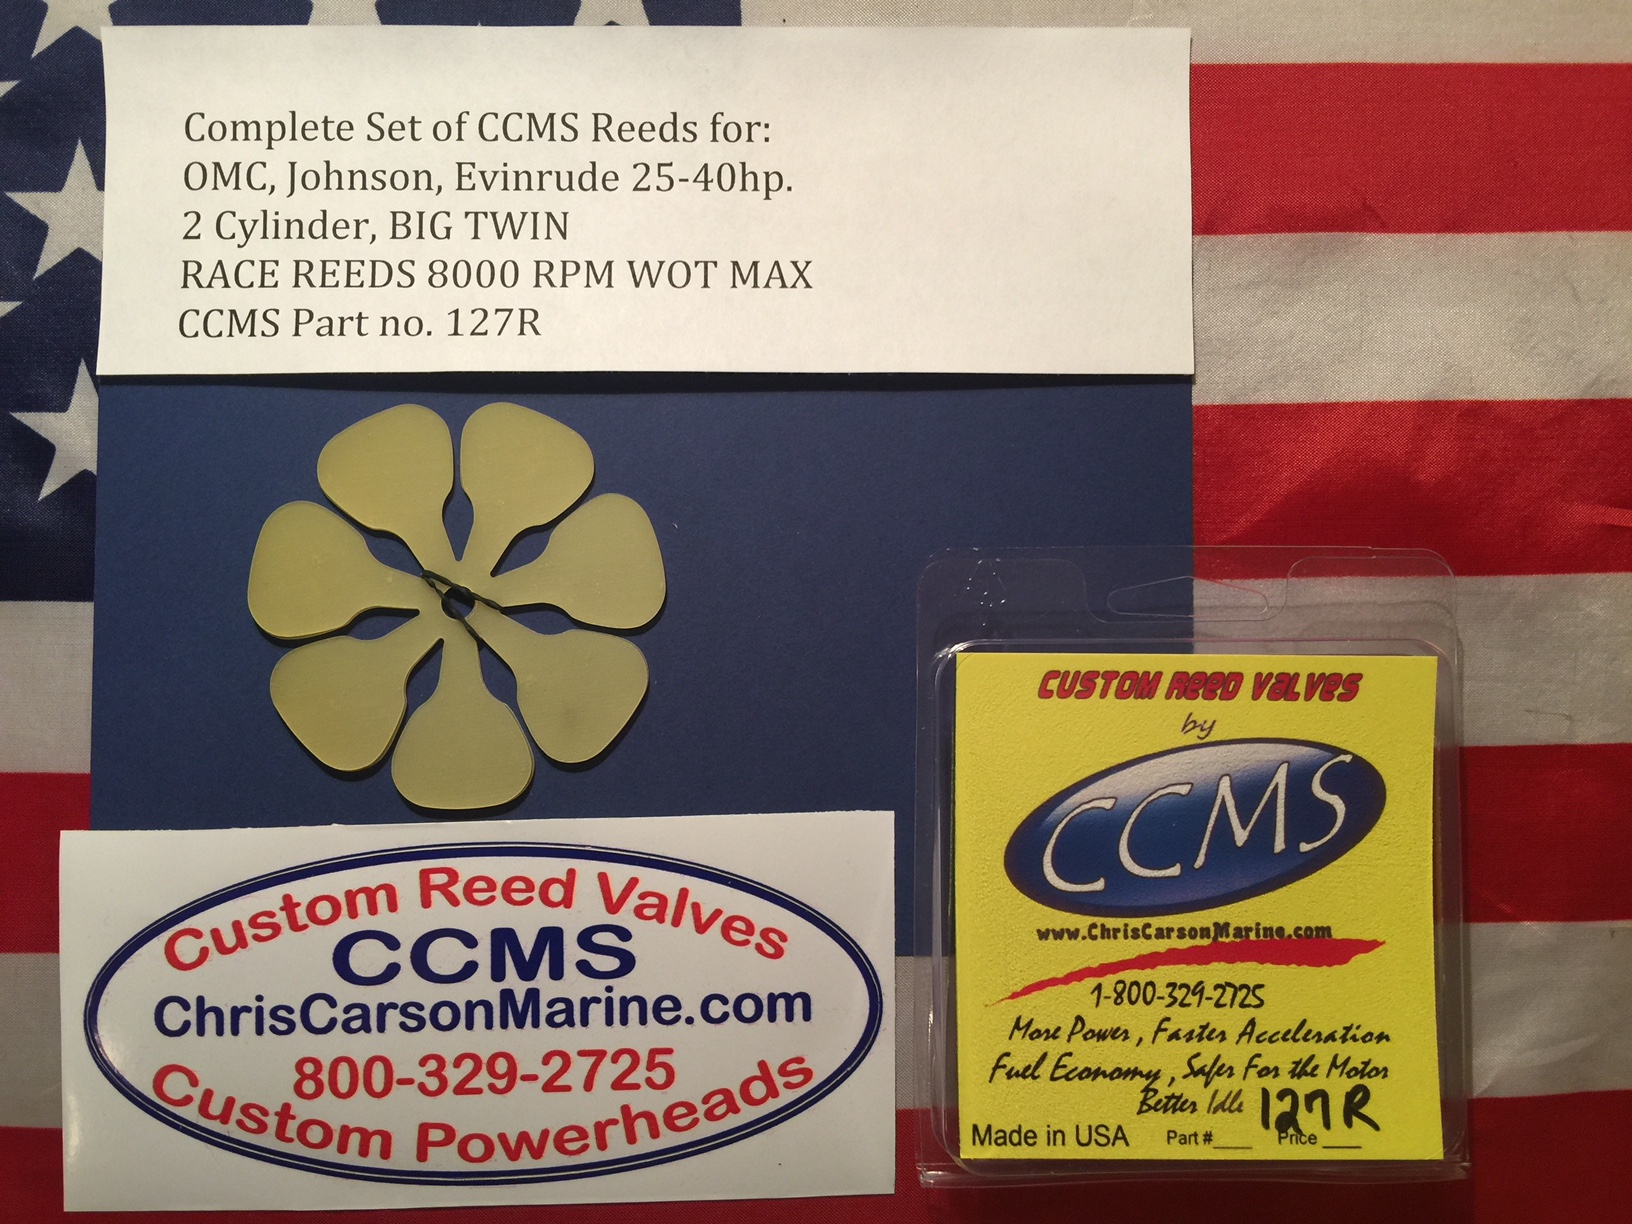 CCMS OMC Johnson/Evinrude Race Reeds 25-40hp  2 cylinder BIG TWIN PN 127R